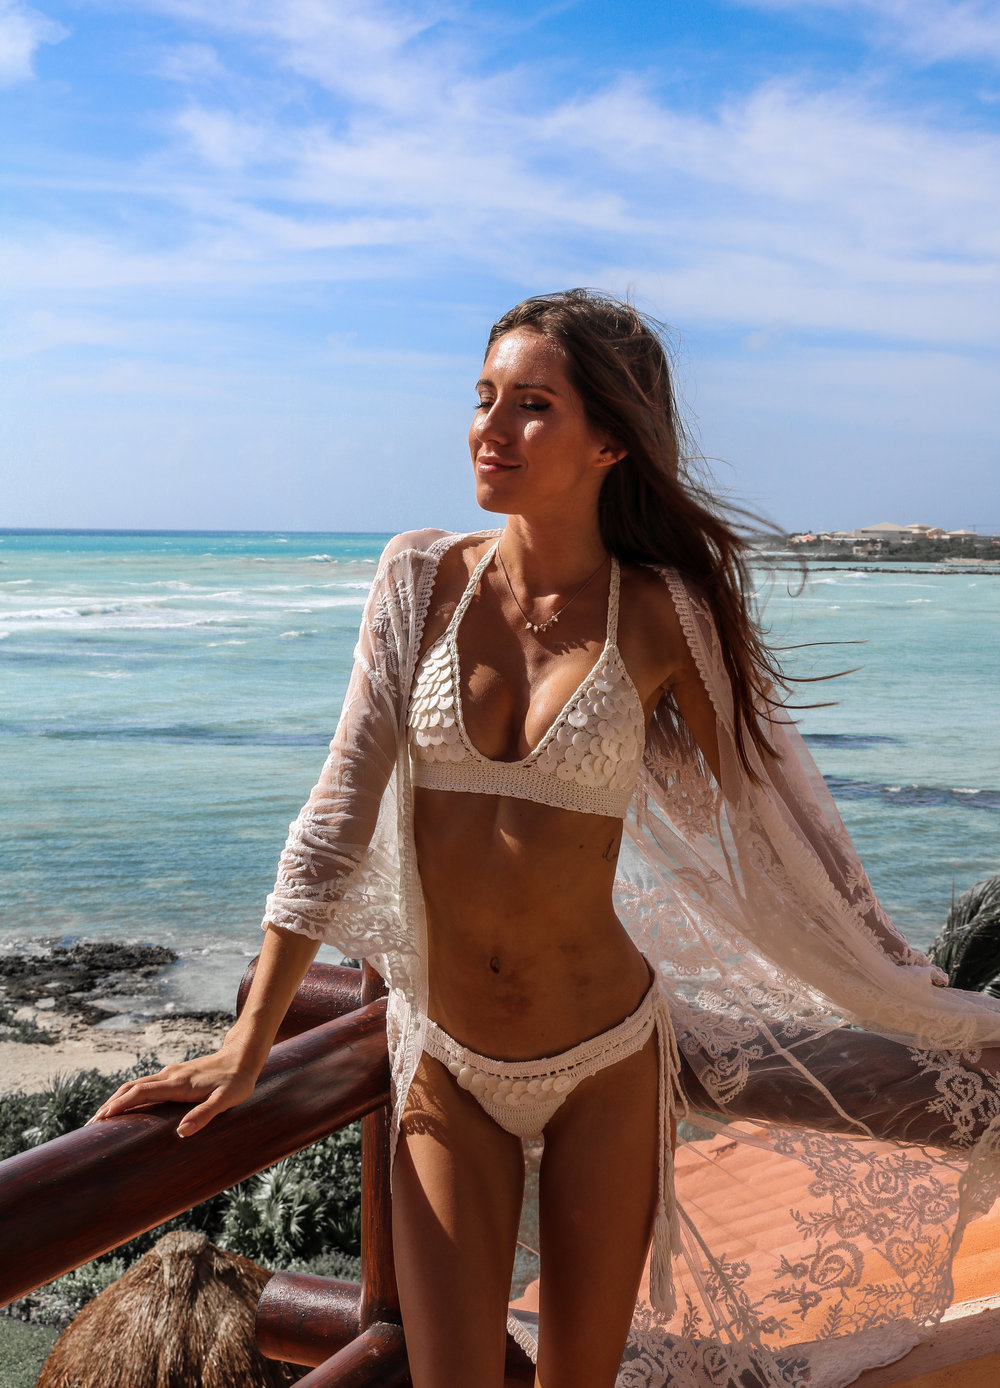 The Hungarian Brunette my 5 favourite bikinis flattering for skinny girls with small boobs - andi bagus shell crochet bikini